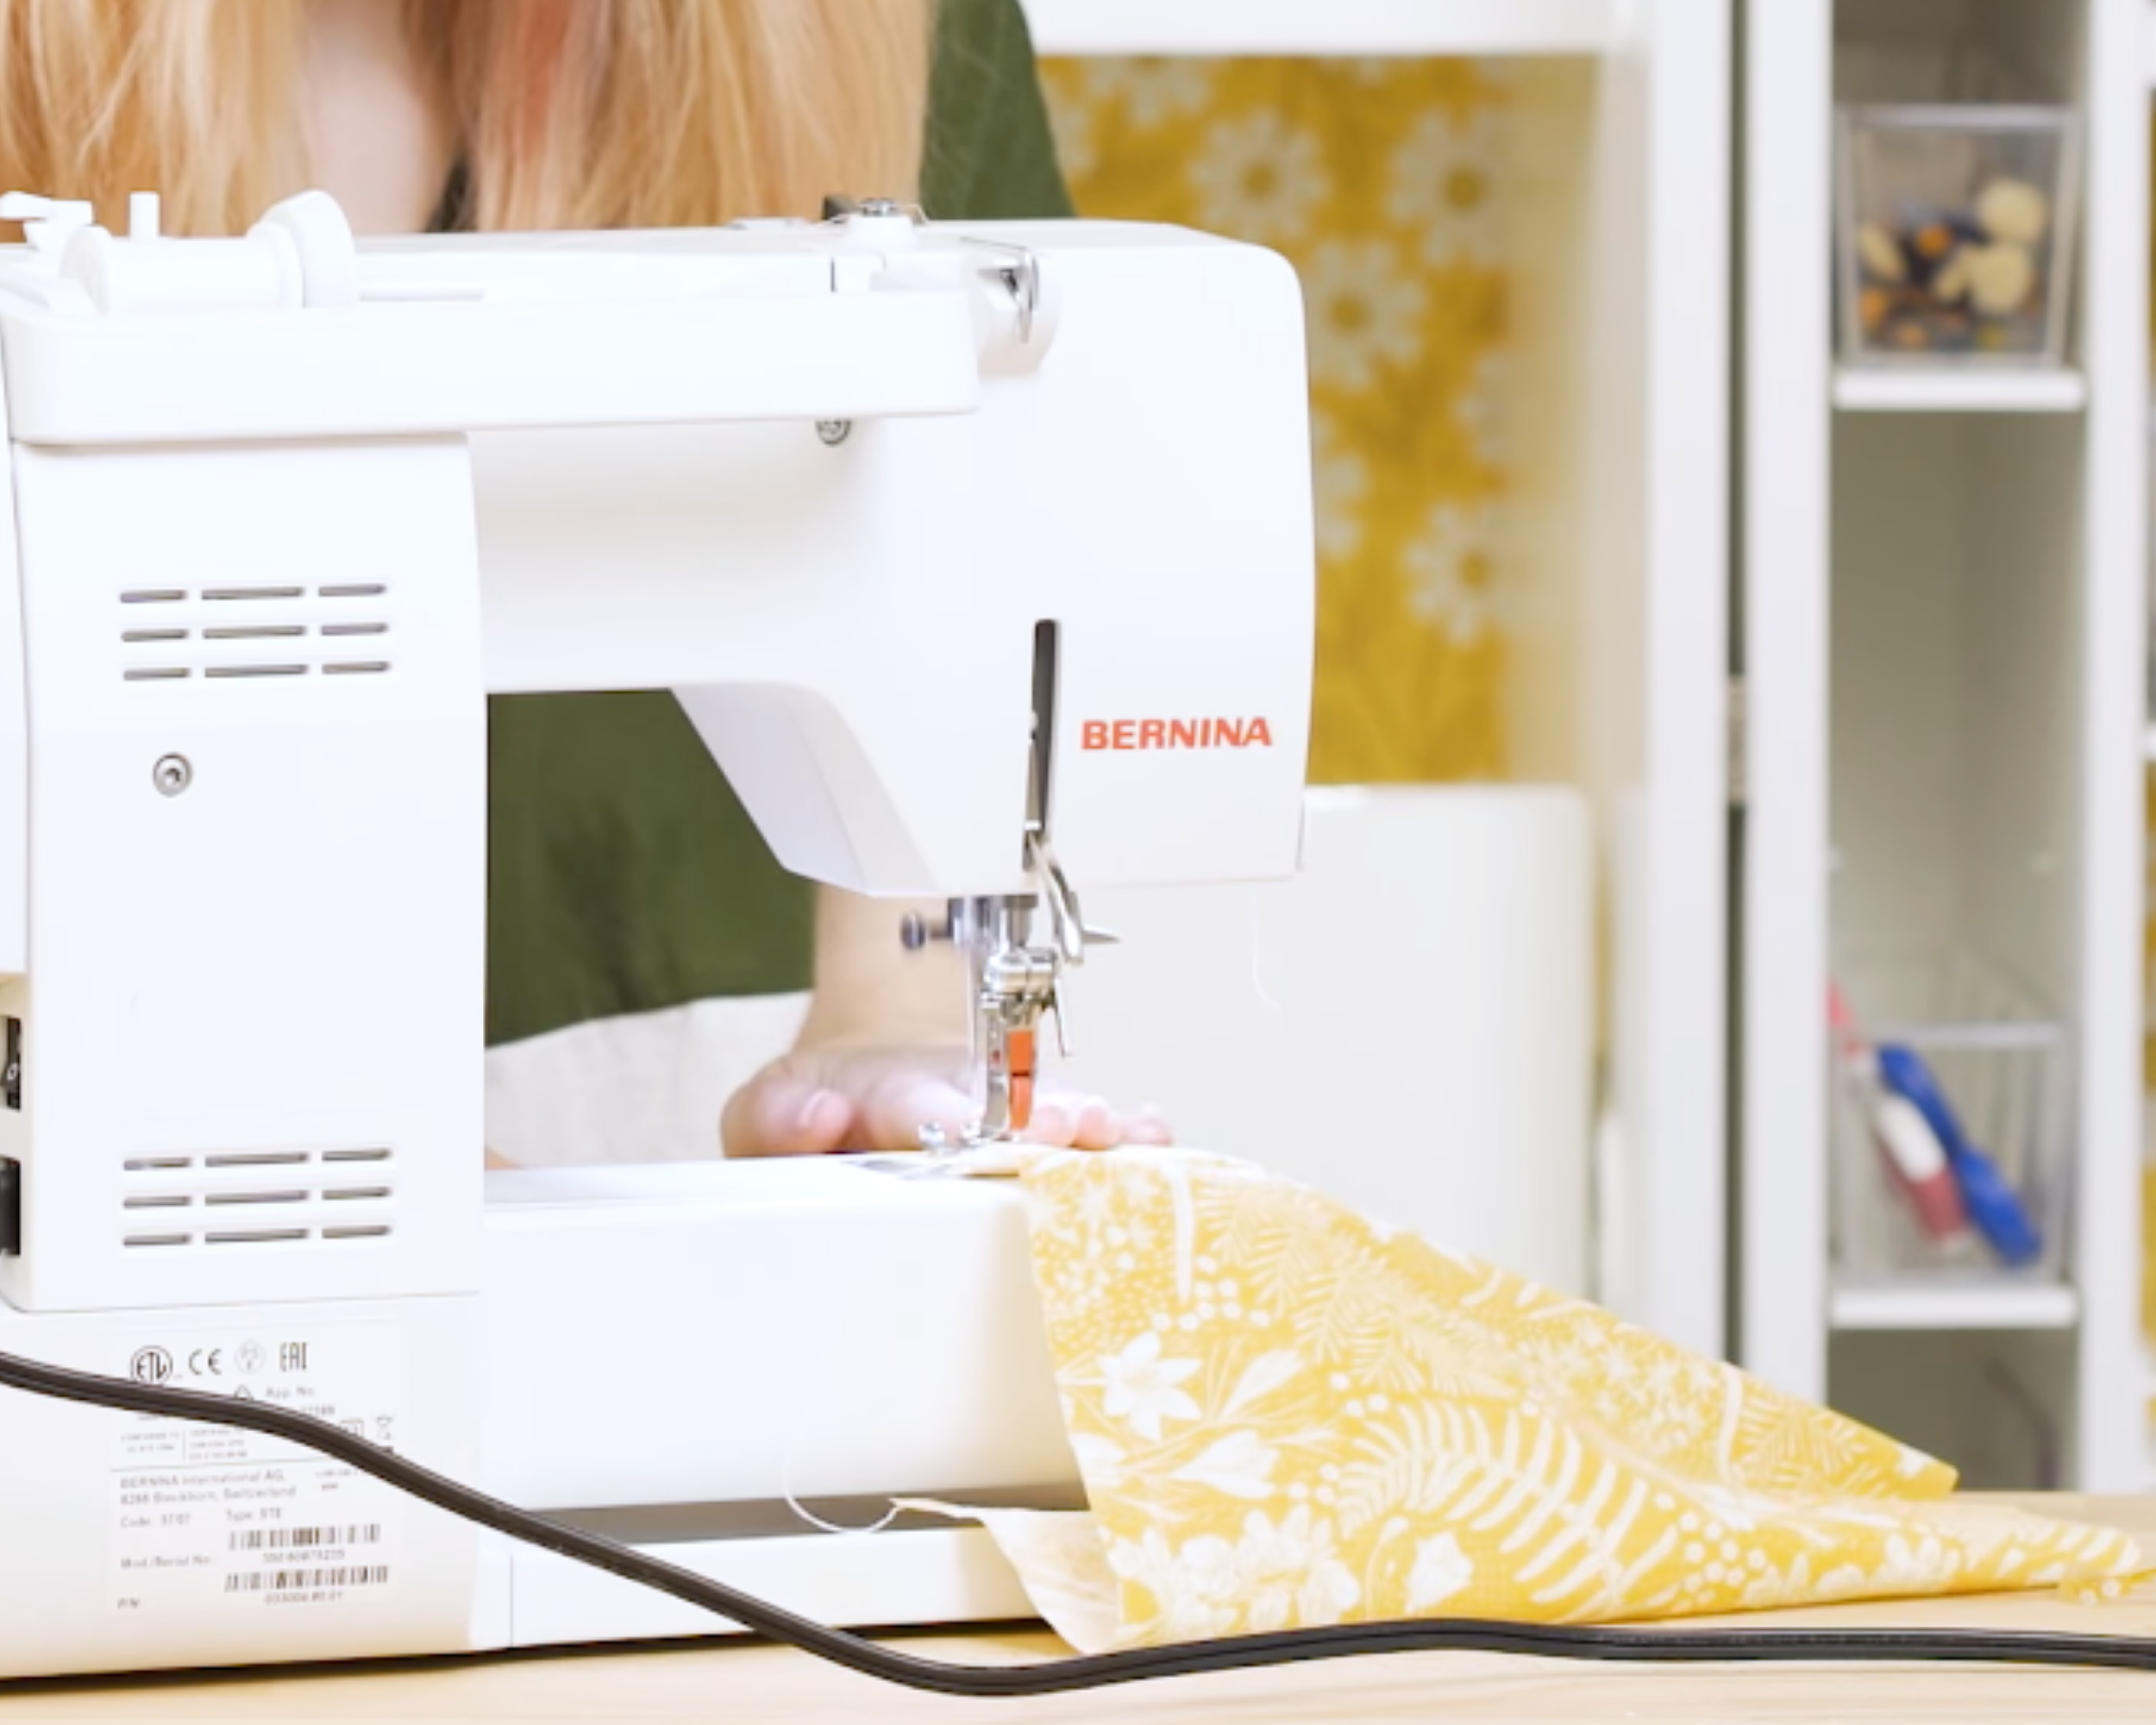 Sewing skirt panels together